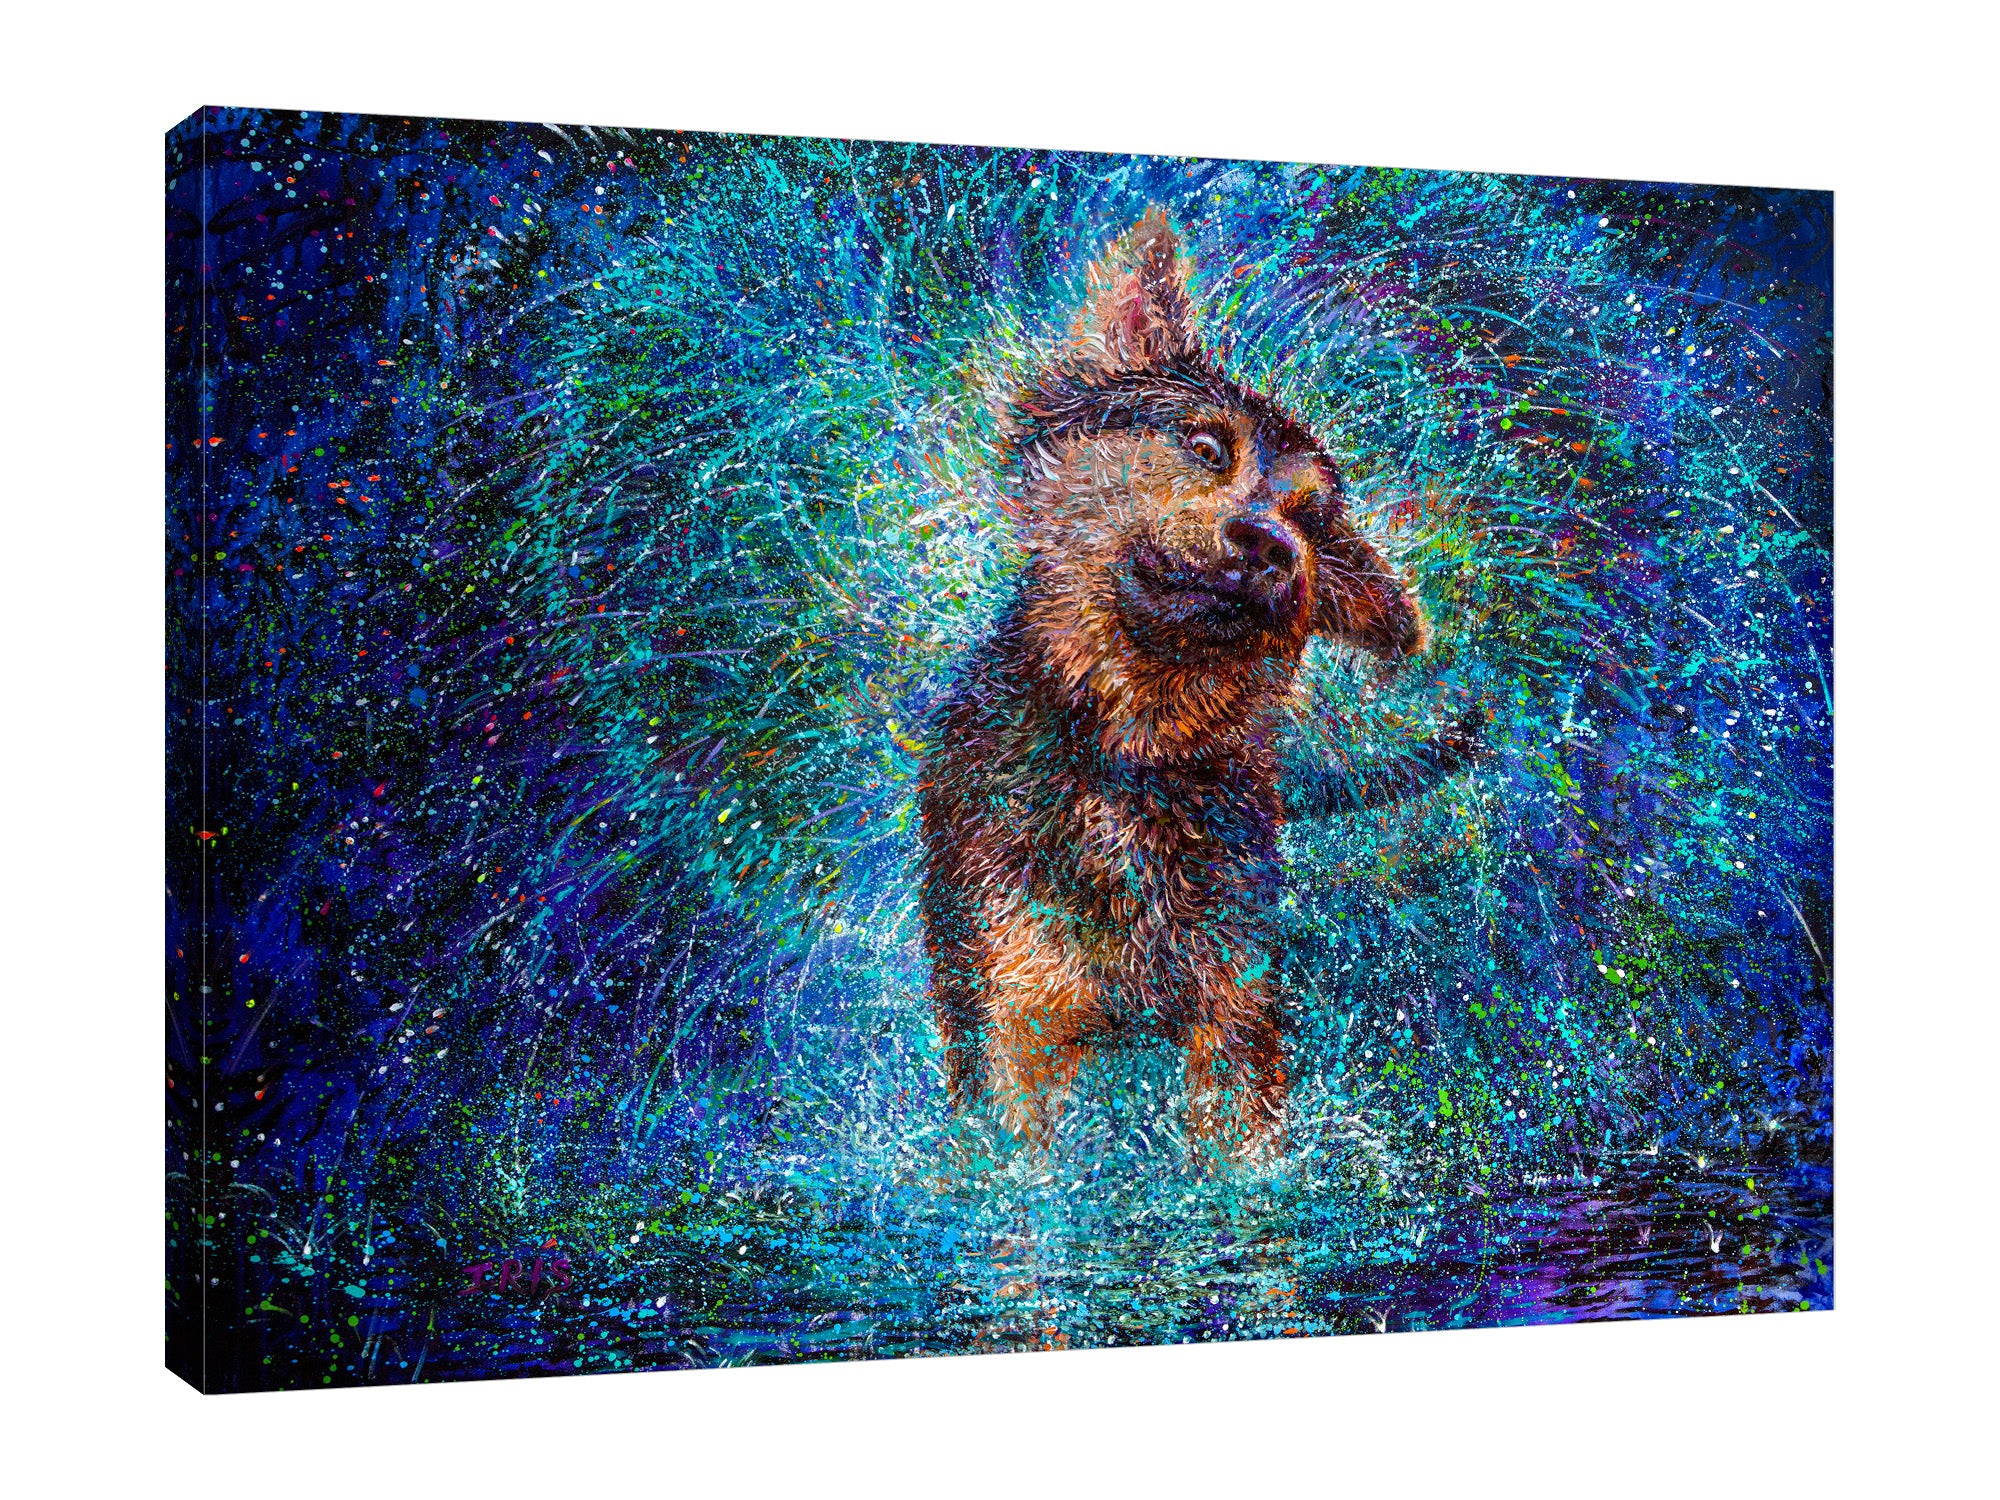 Iris-Scott,Modern & Contemporary,Traditional,Animals,finger paint,surreal,splatter,shaking,dog,wet dog,shepherd,blue,green,night,canine,Red,Charcoal Gray,Sea Green,Gray,Black